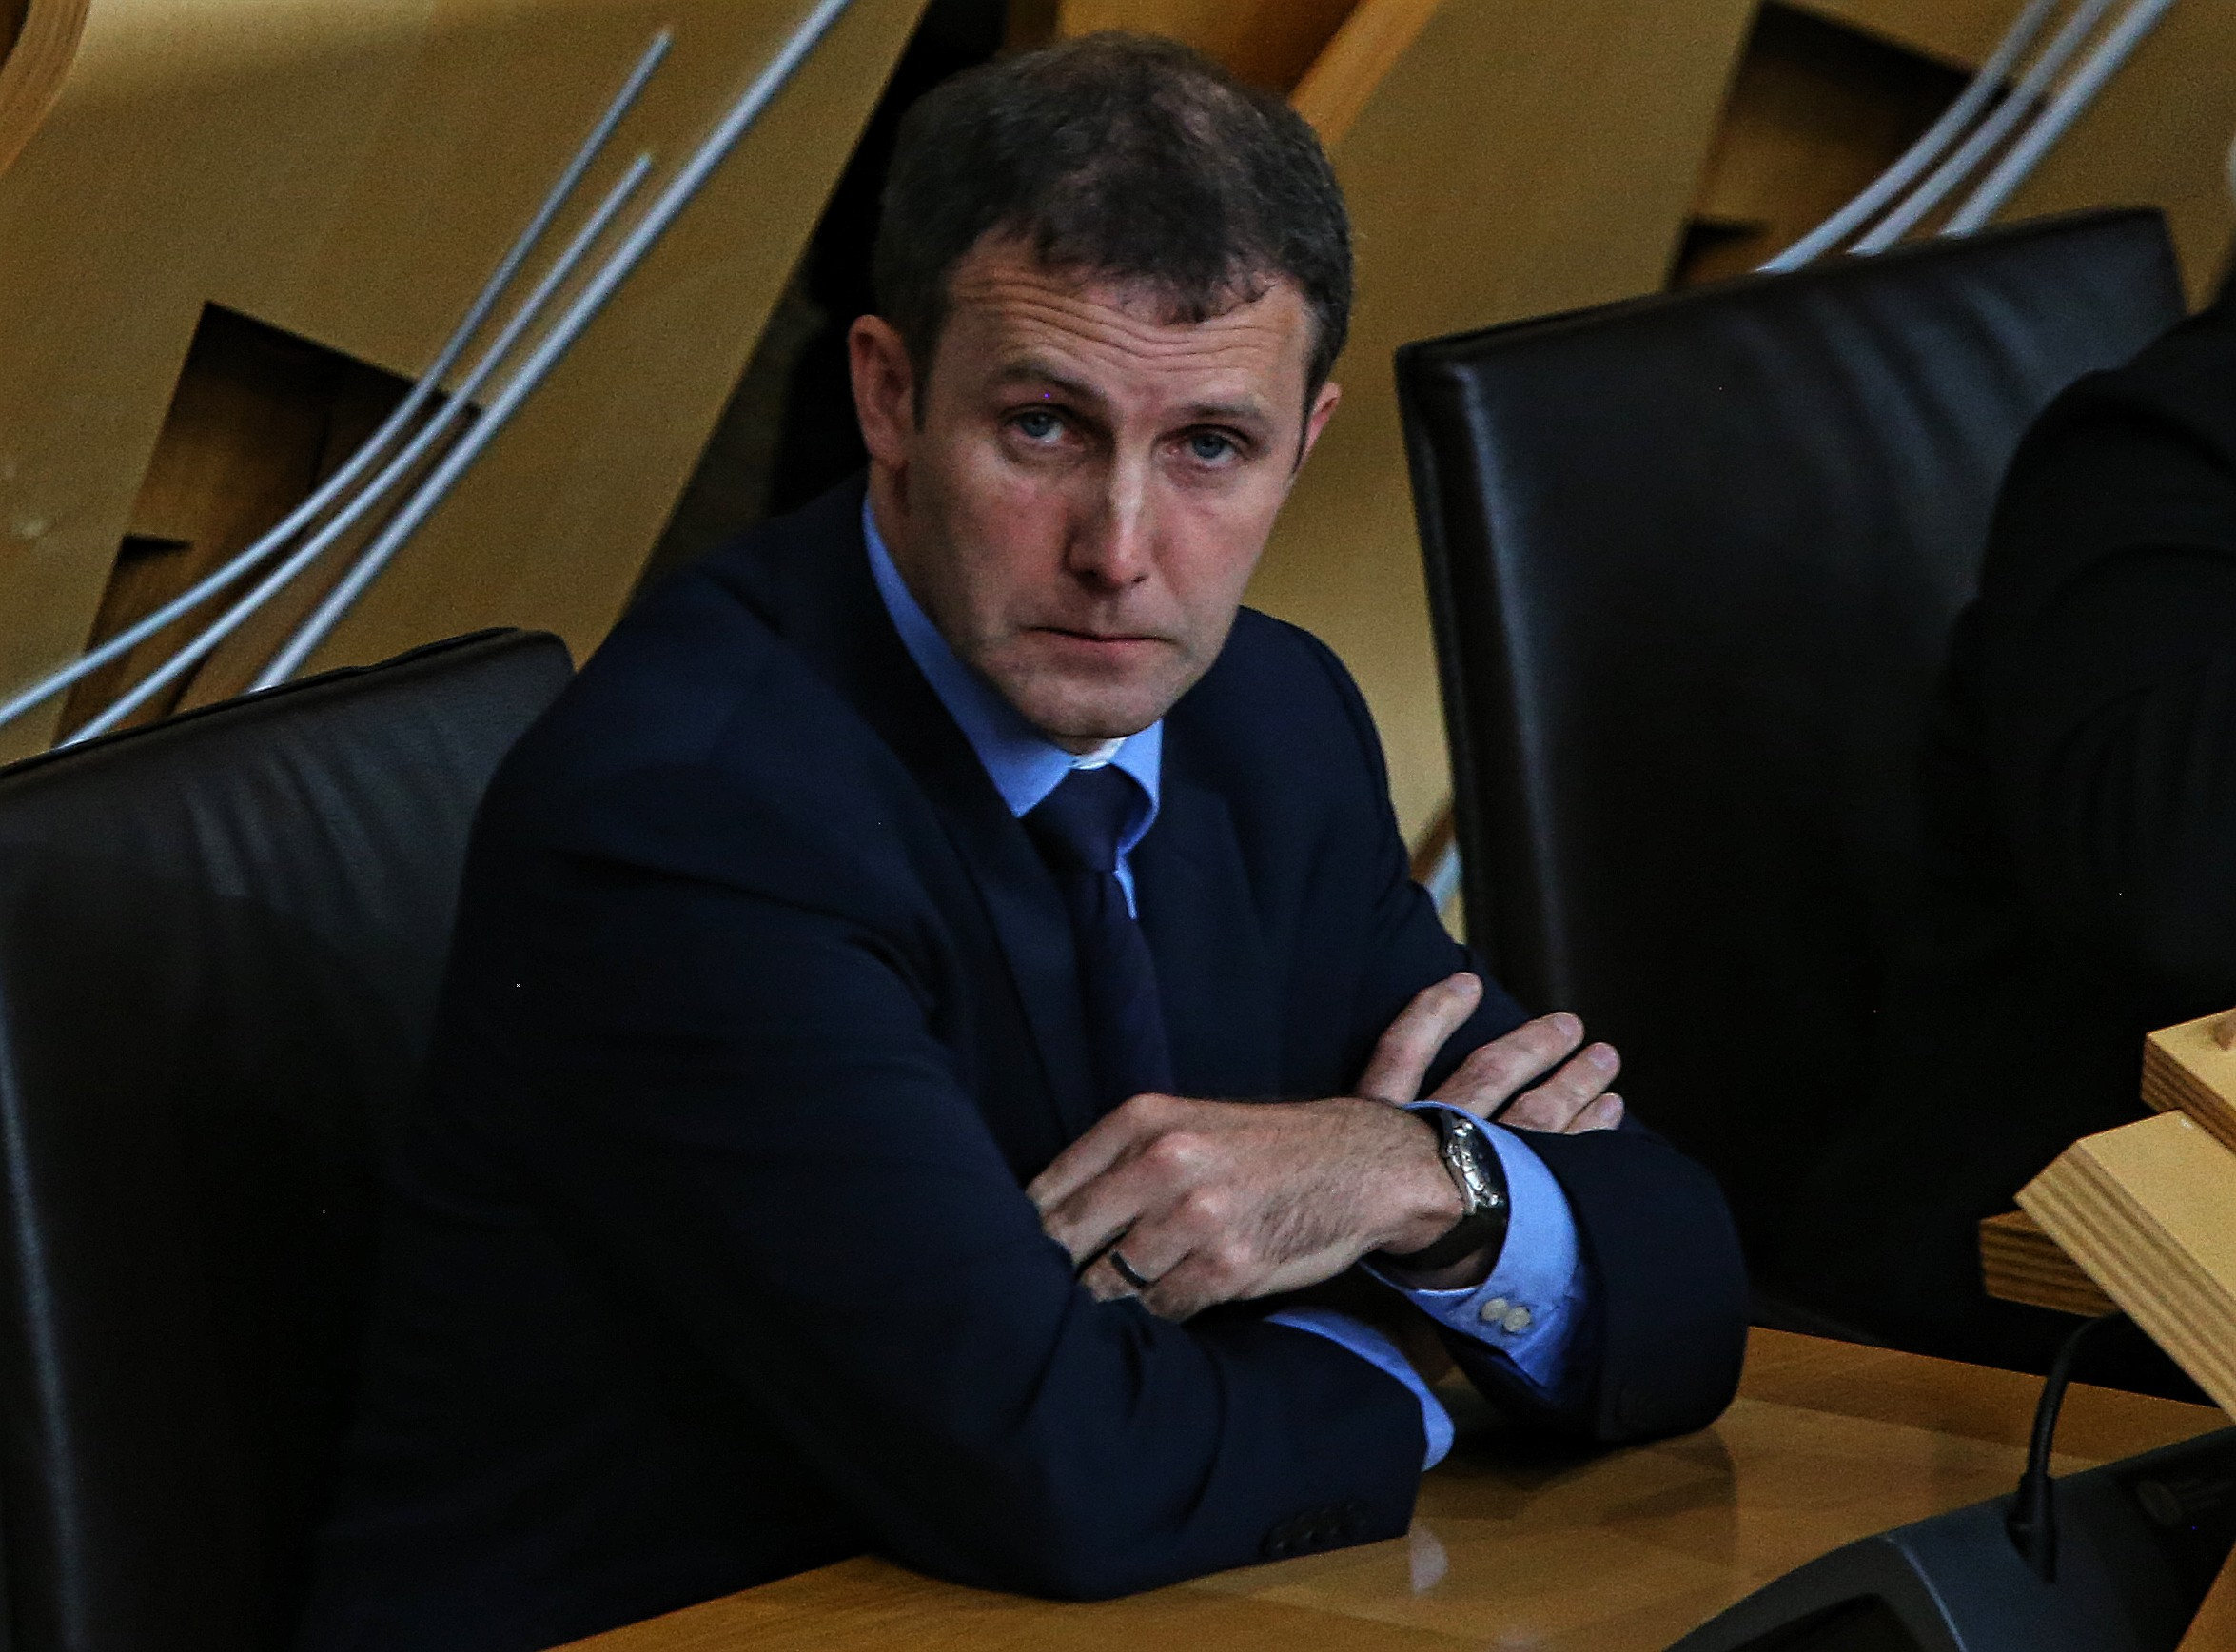 Justic Sec Michael Matheson in the Scottish Parliament chamber thursdayPic Gordon Terris/The Herald3/9/15